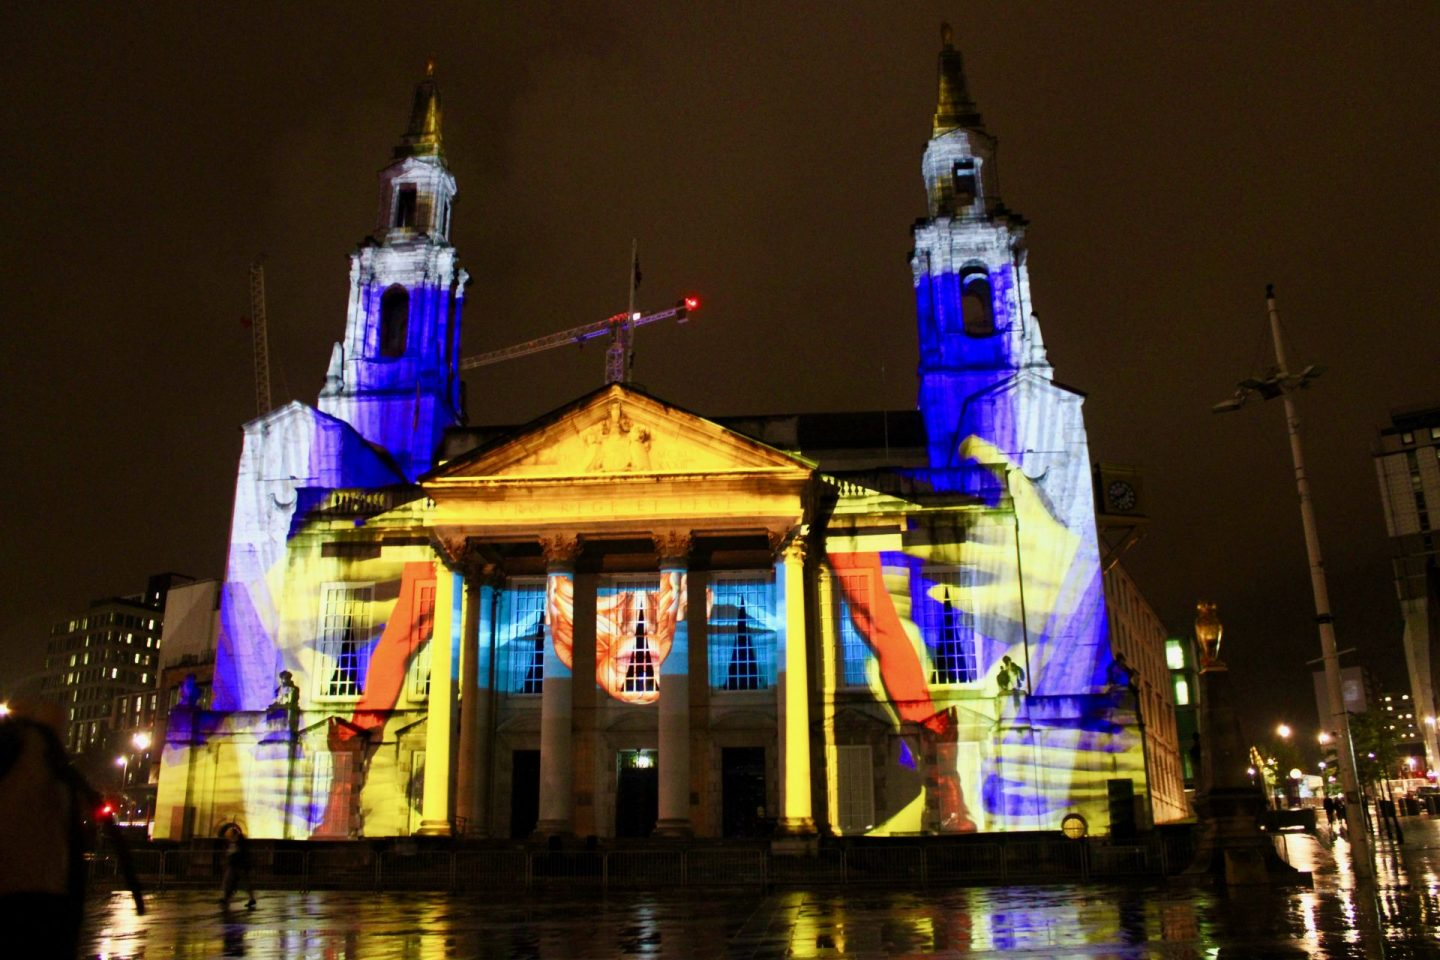 Leeds Civic Hall illuminated with an animated projection at Leeds Light Night. There are colours of yellow, red and purple showing various patterns, and some of the colours are reflecting off the ground in front of the building